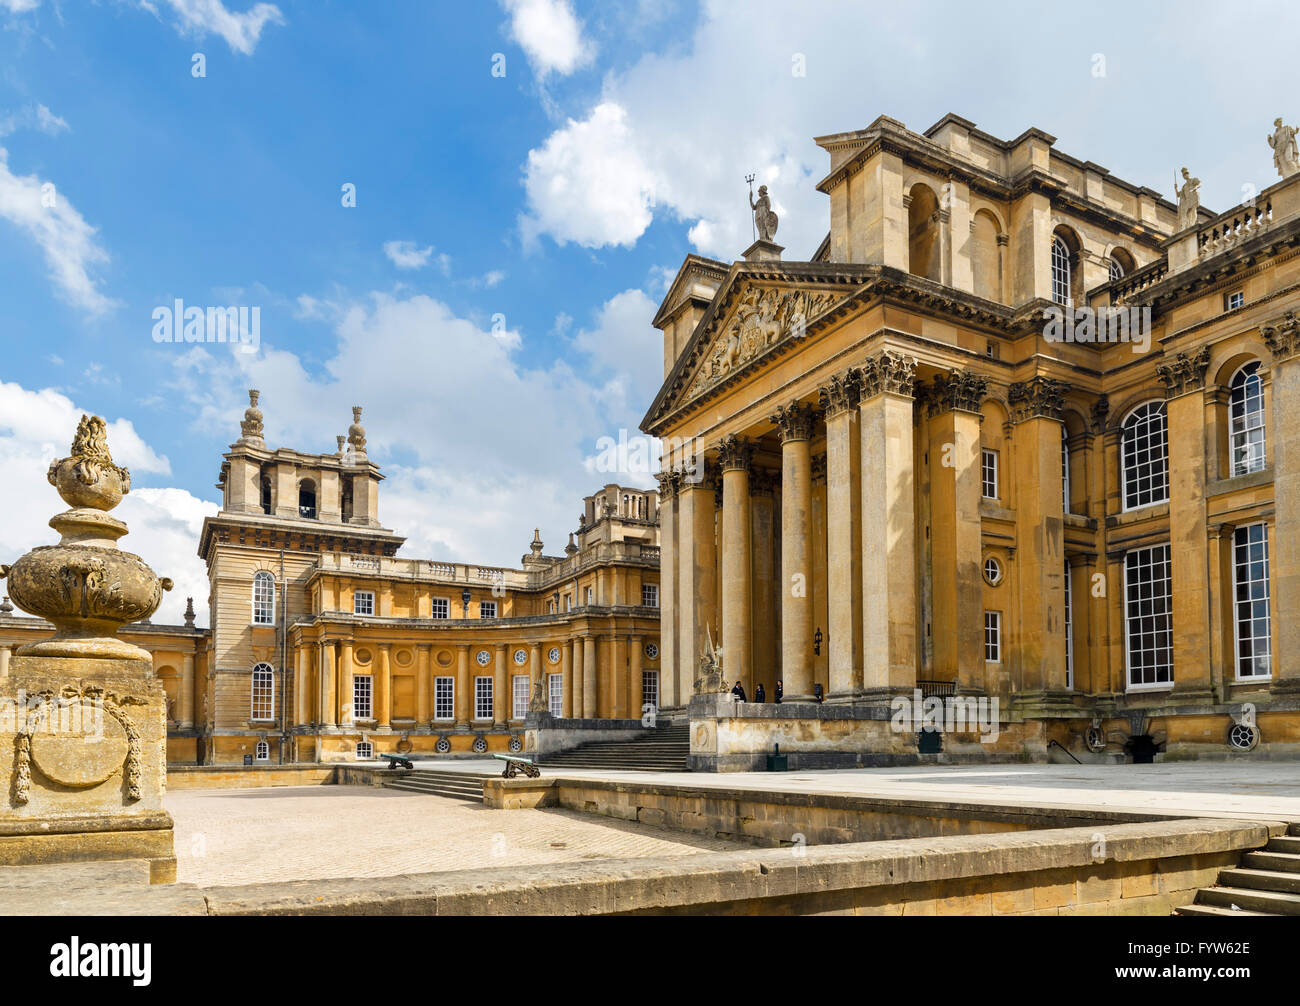 Blenheim Palace, seat of the Dukes of Marlborough and birthplace of Sir Winston Churchill, Woodstock, Oxfordshire, - Stock Image